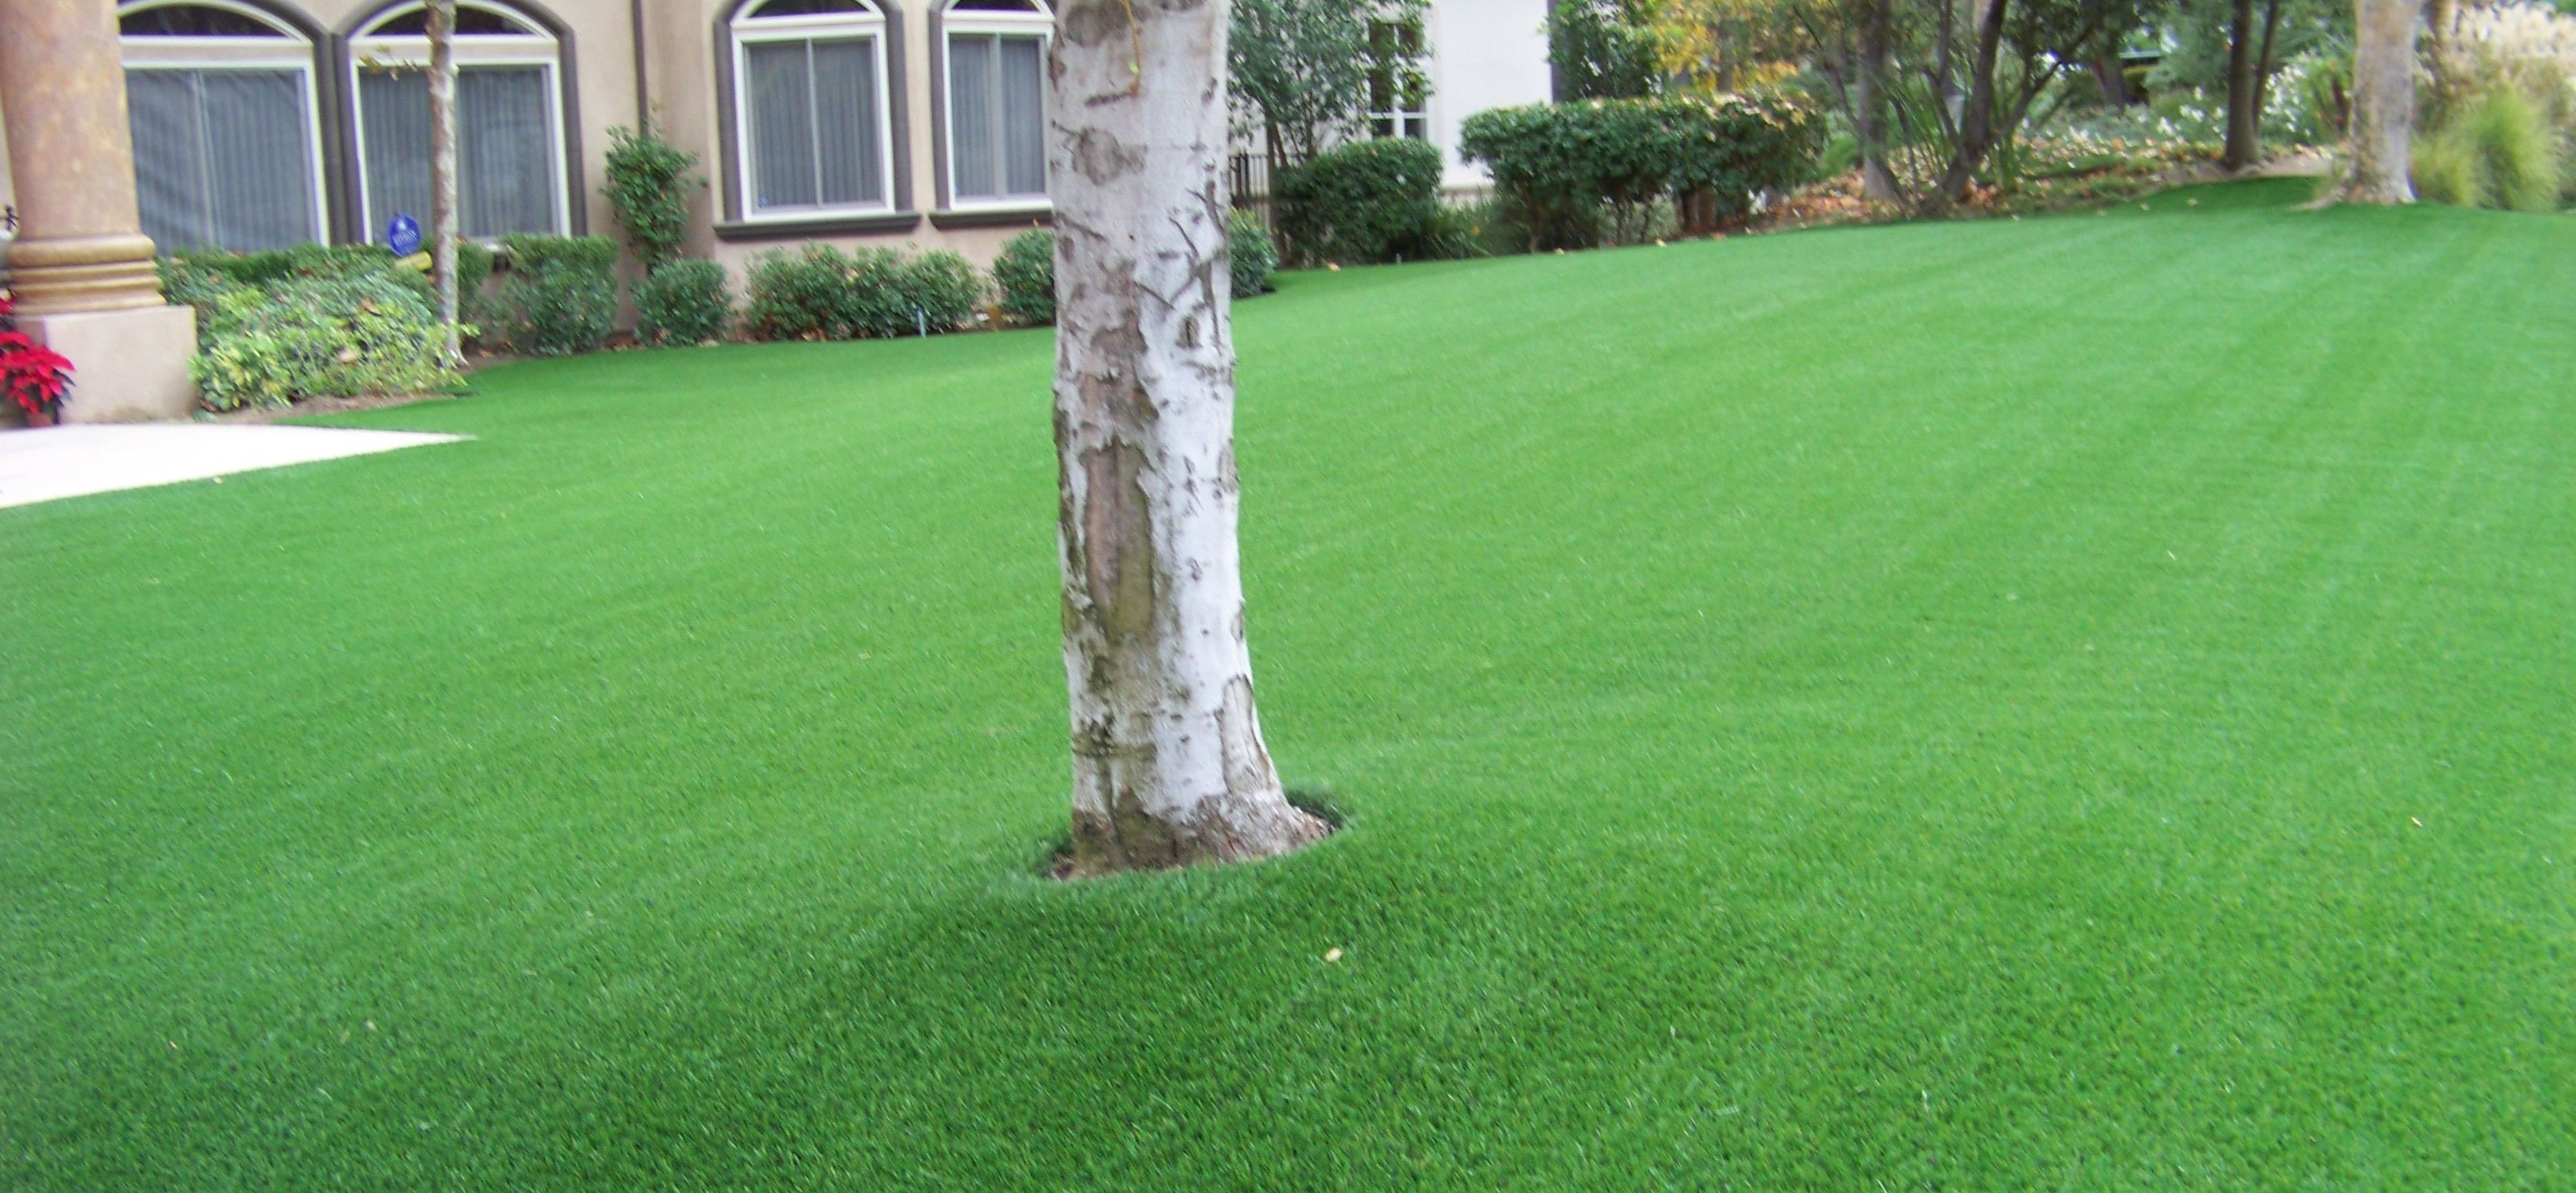 How Much Does Artificial Grass Cost To Install Artificial Plants Outdoor Cheap Artificial Plants Artificial Grass Installation